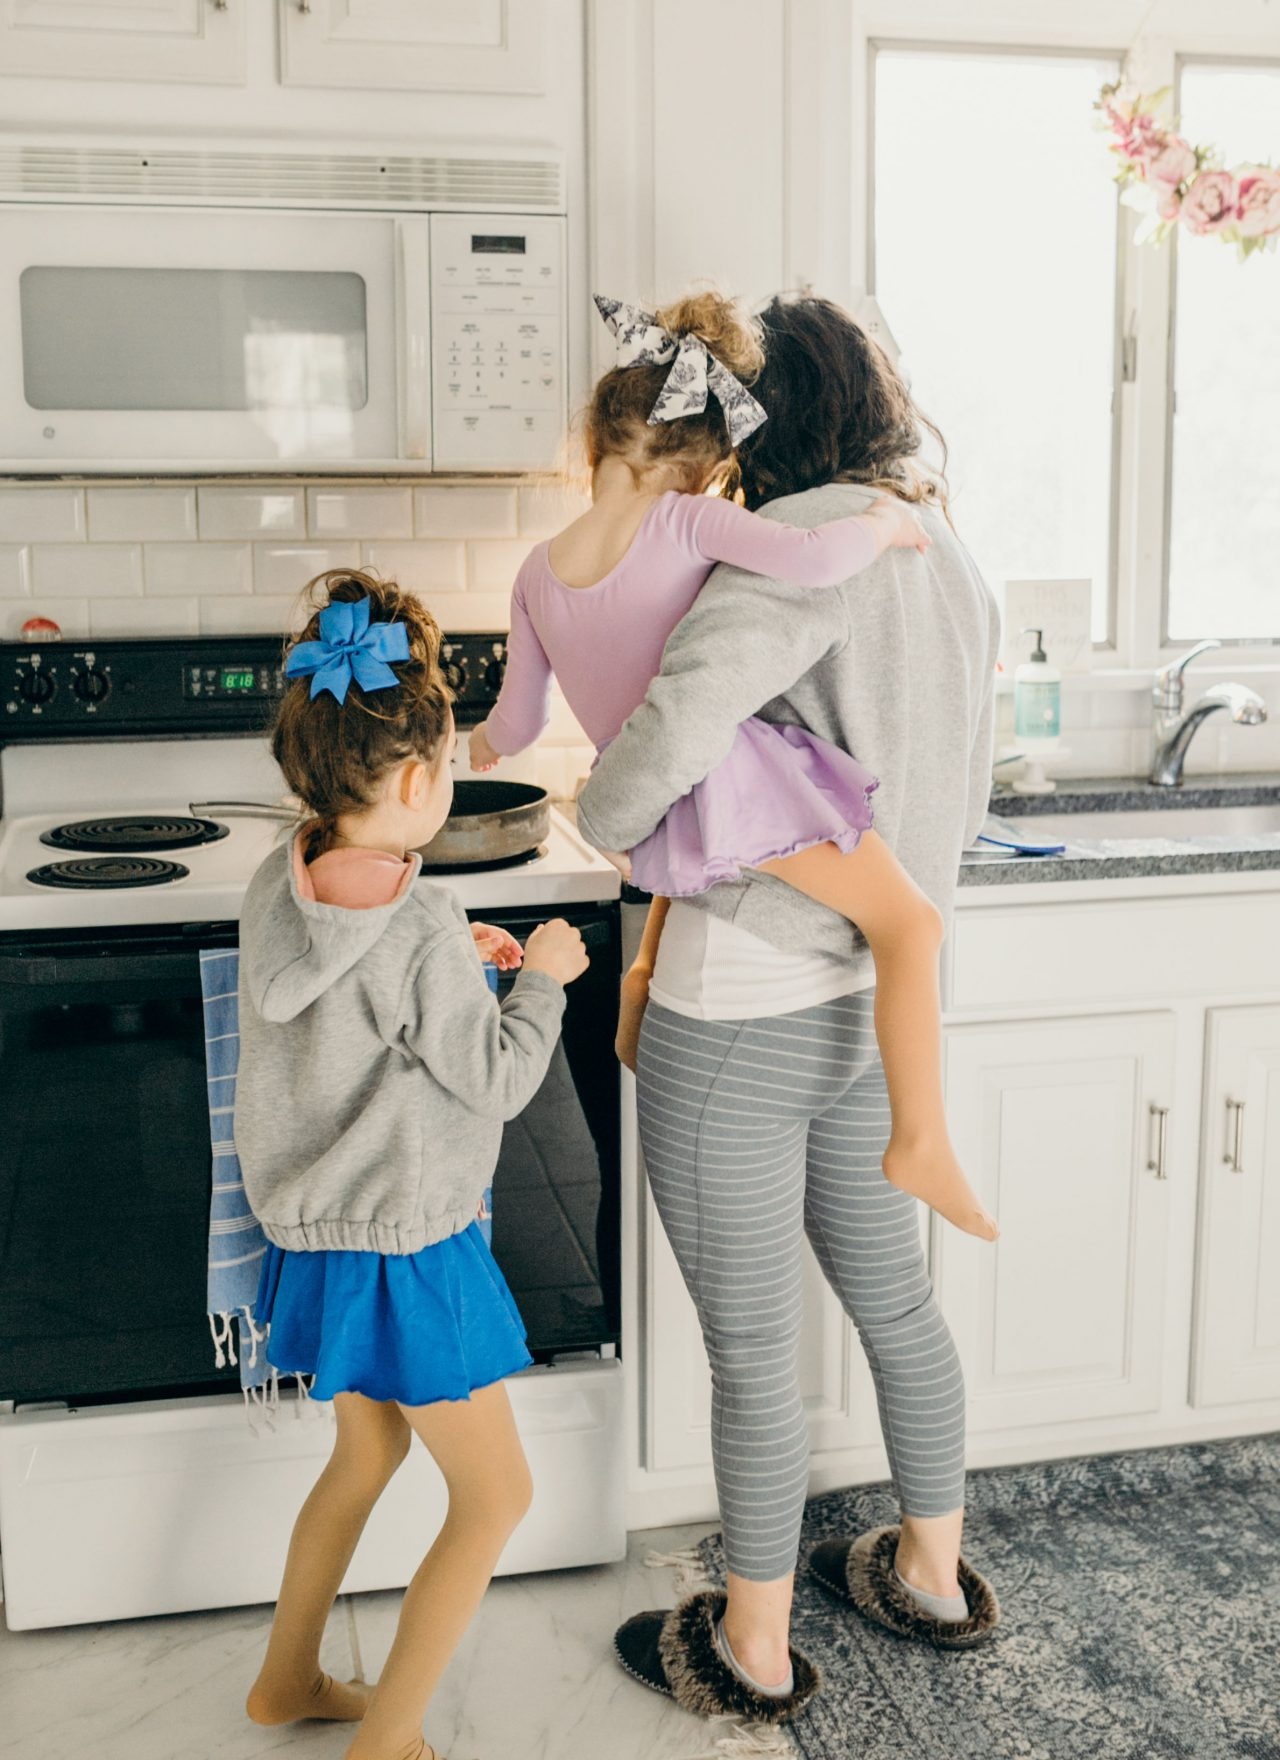 Mom holding daughter cooking in kitchen